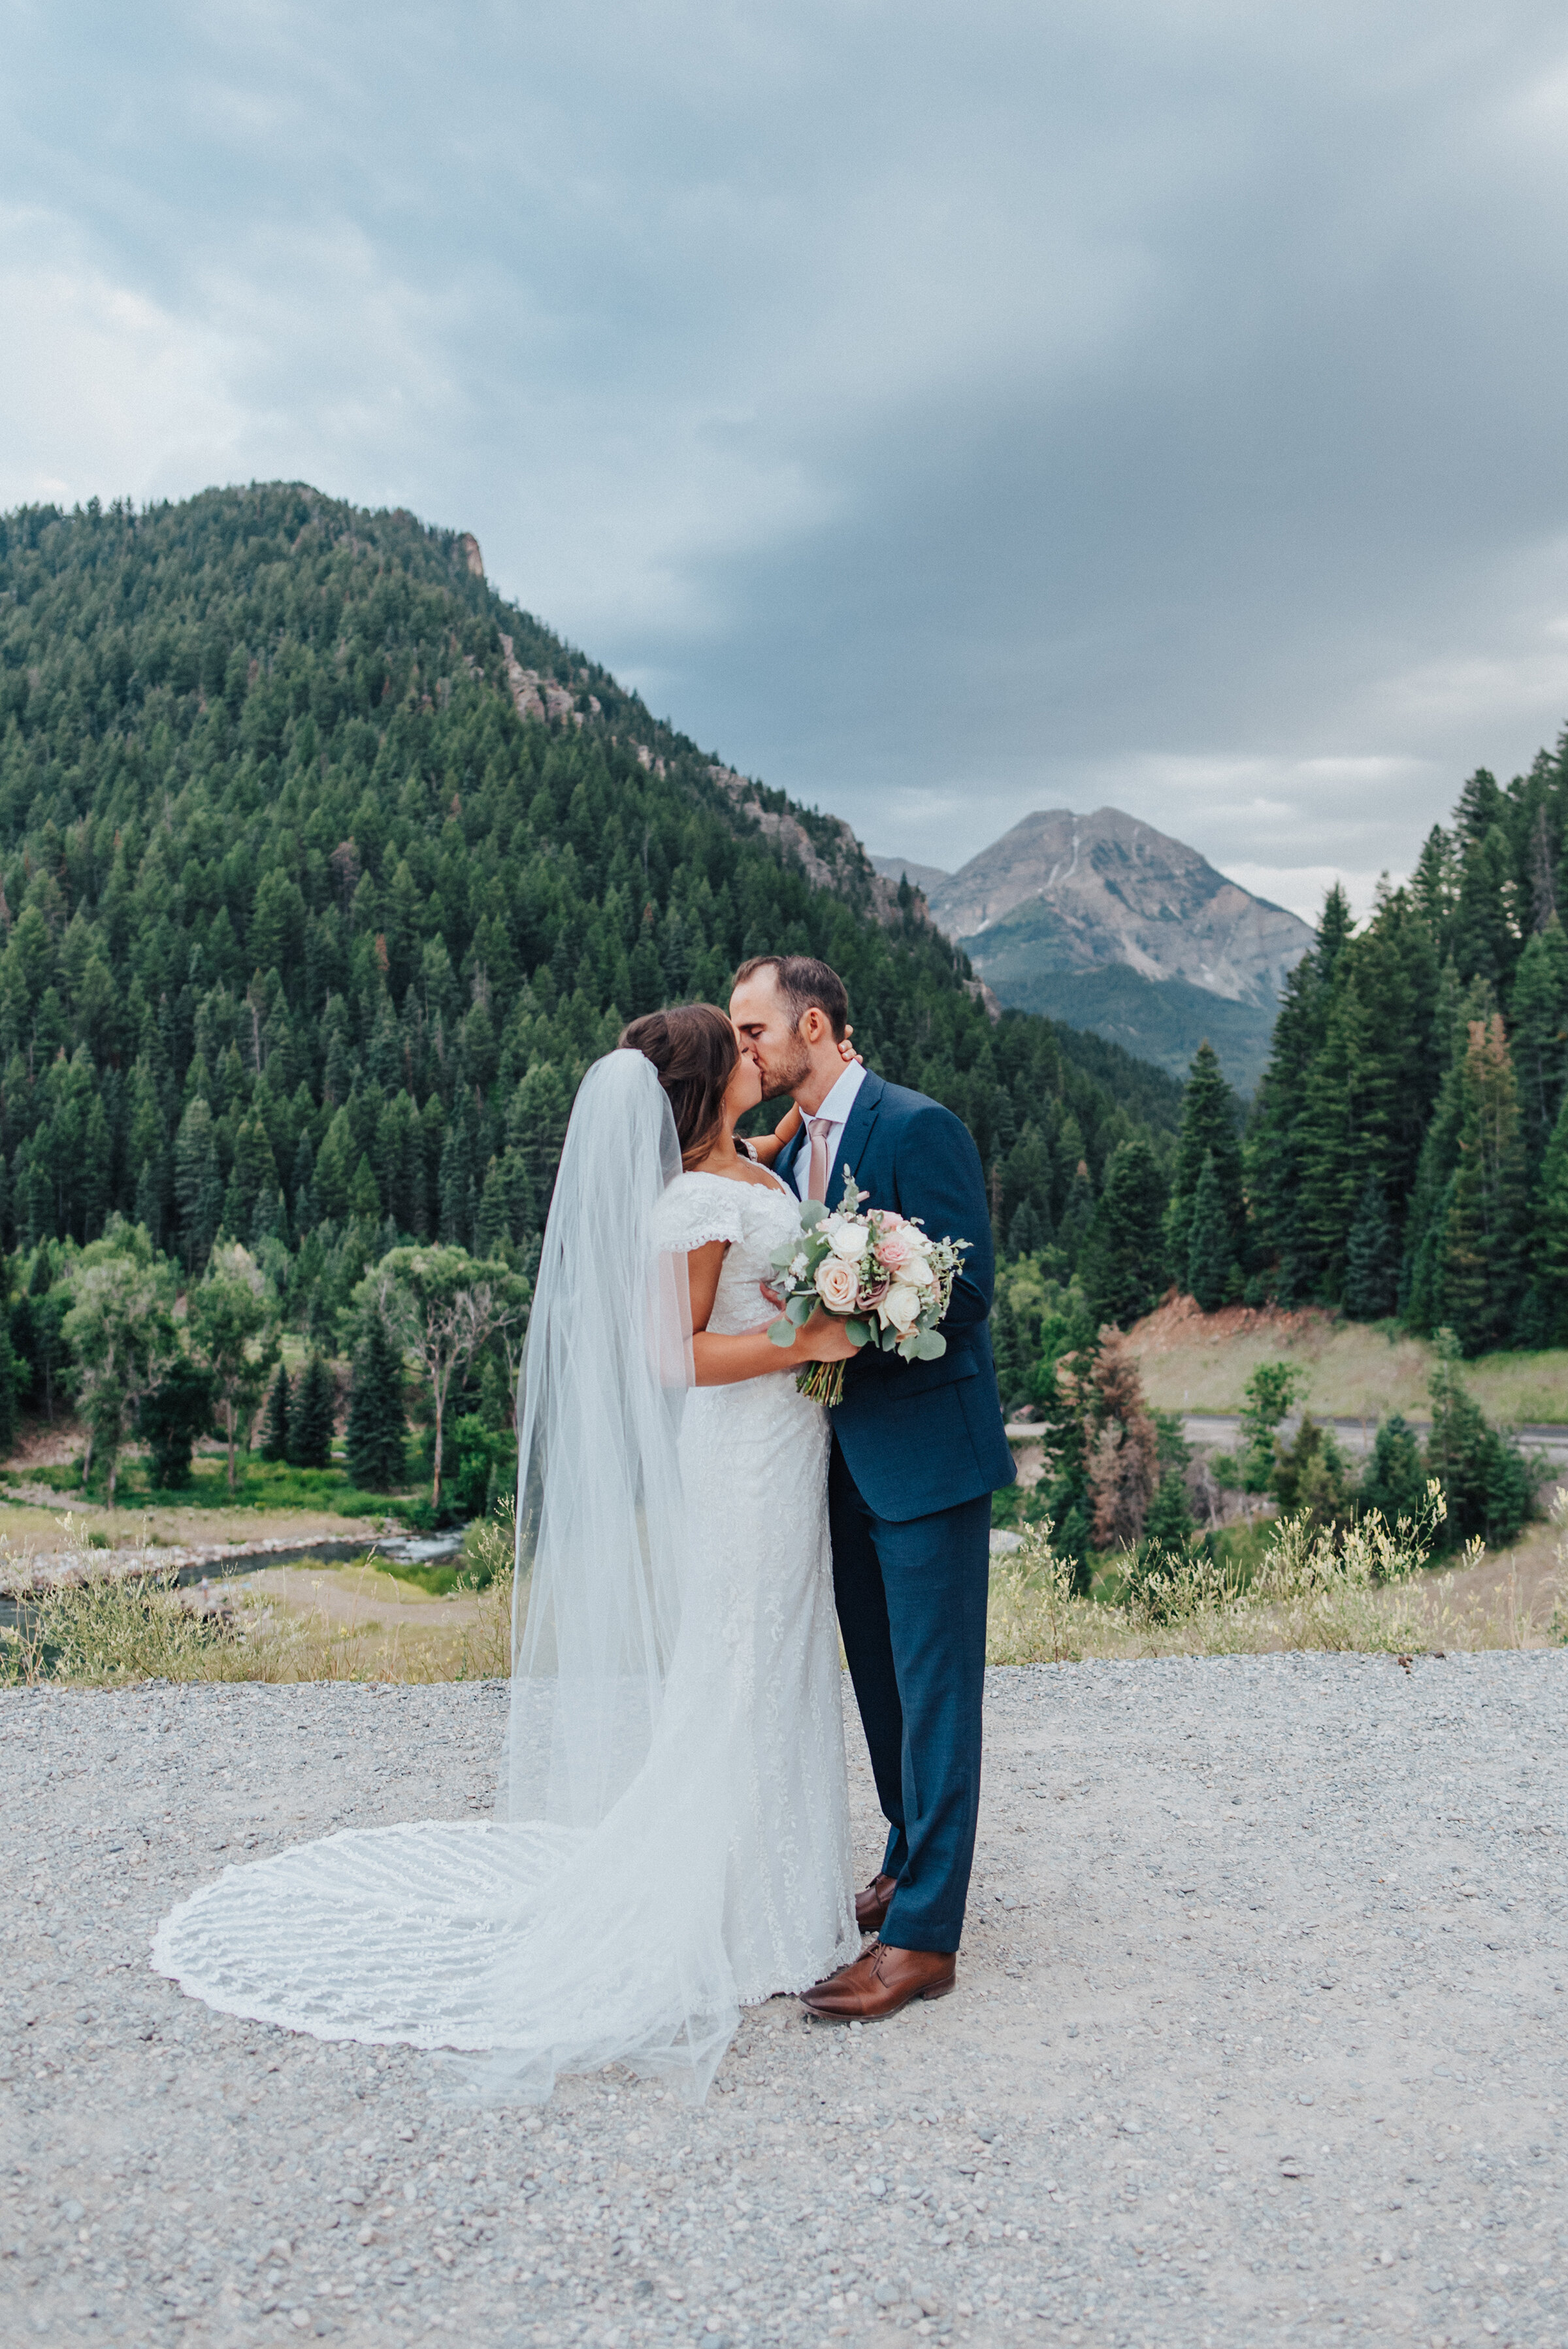 A beautiful couple shares a kiss while standing on a smooth sidewalk that surrounds the breathtaking Tibble Fork Reservoir. Navy suit light pink tie light pink floral bouquet exchanging glances evergreen trees mountains in the background #husbandandwife #younglove #tibbleforkreservoir #utahwedding #americanforkcanyon #coupleshoot #formals #weddingphotography #couplesgoals #couplephotography #weddingphotographer #couplesphotography #groom #bride